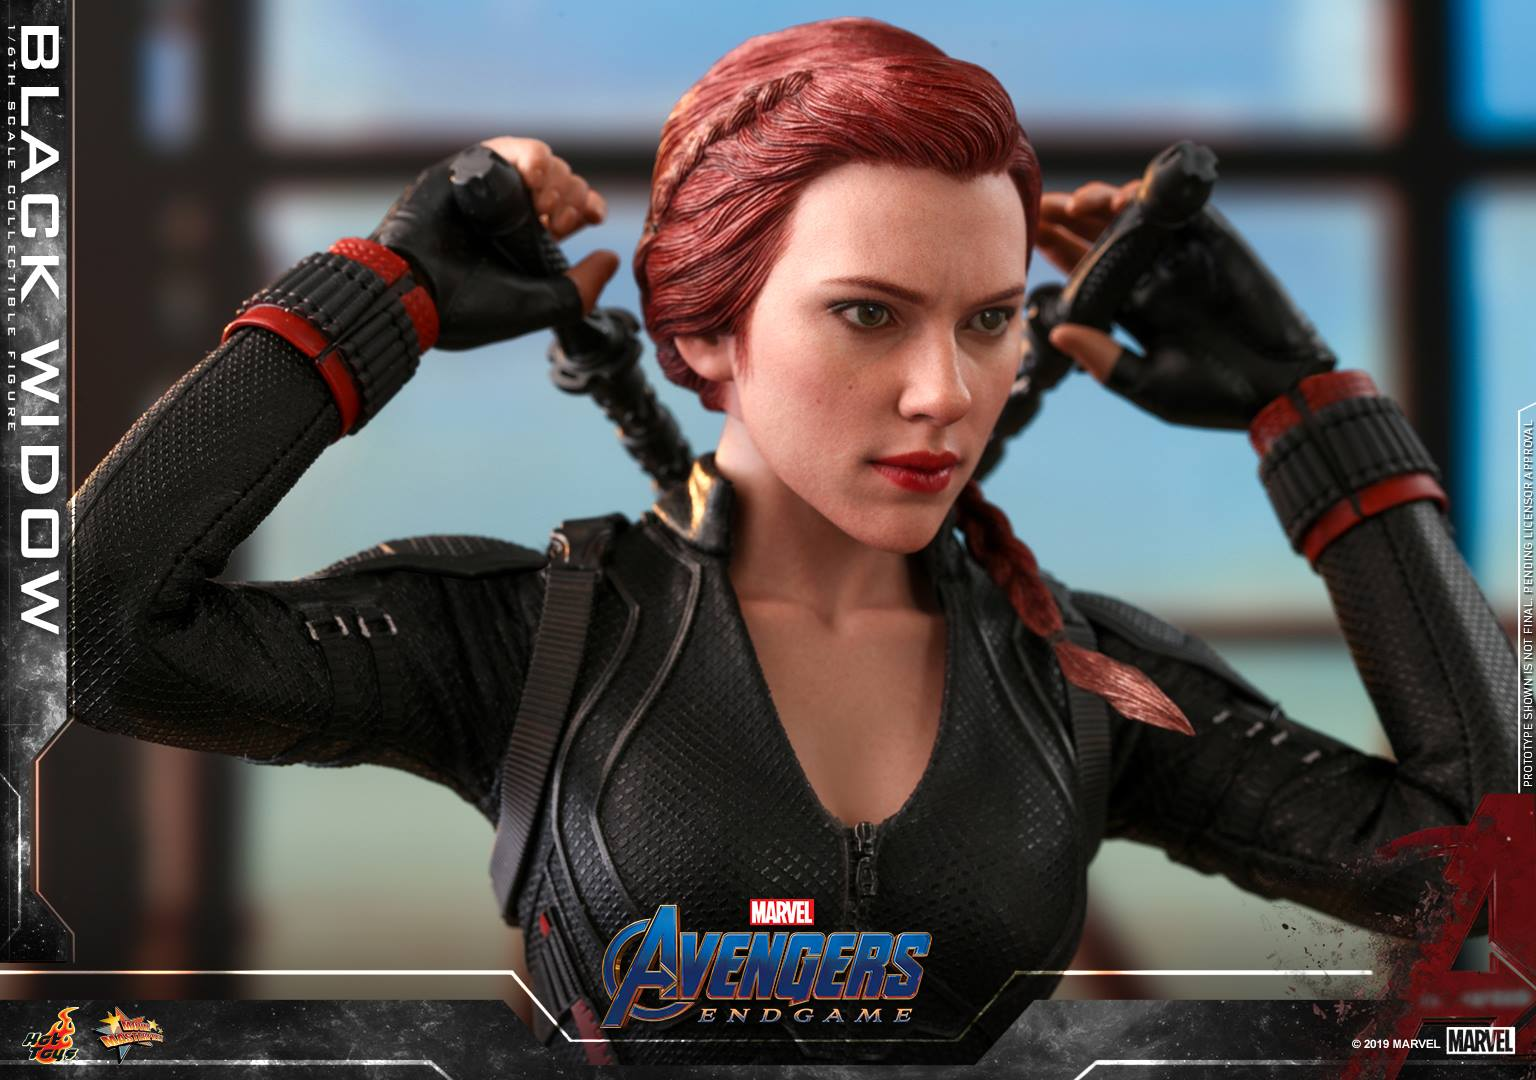 You for avengers posed like black widow think, that